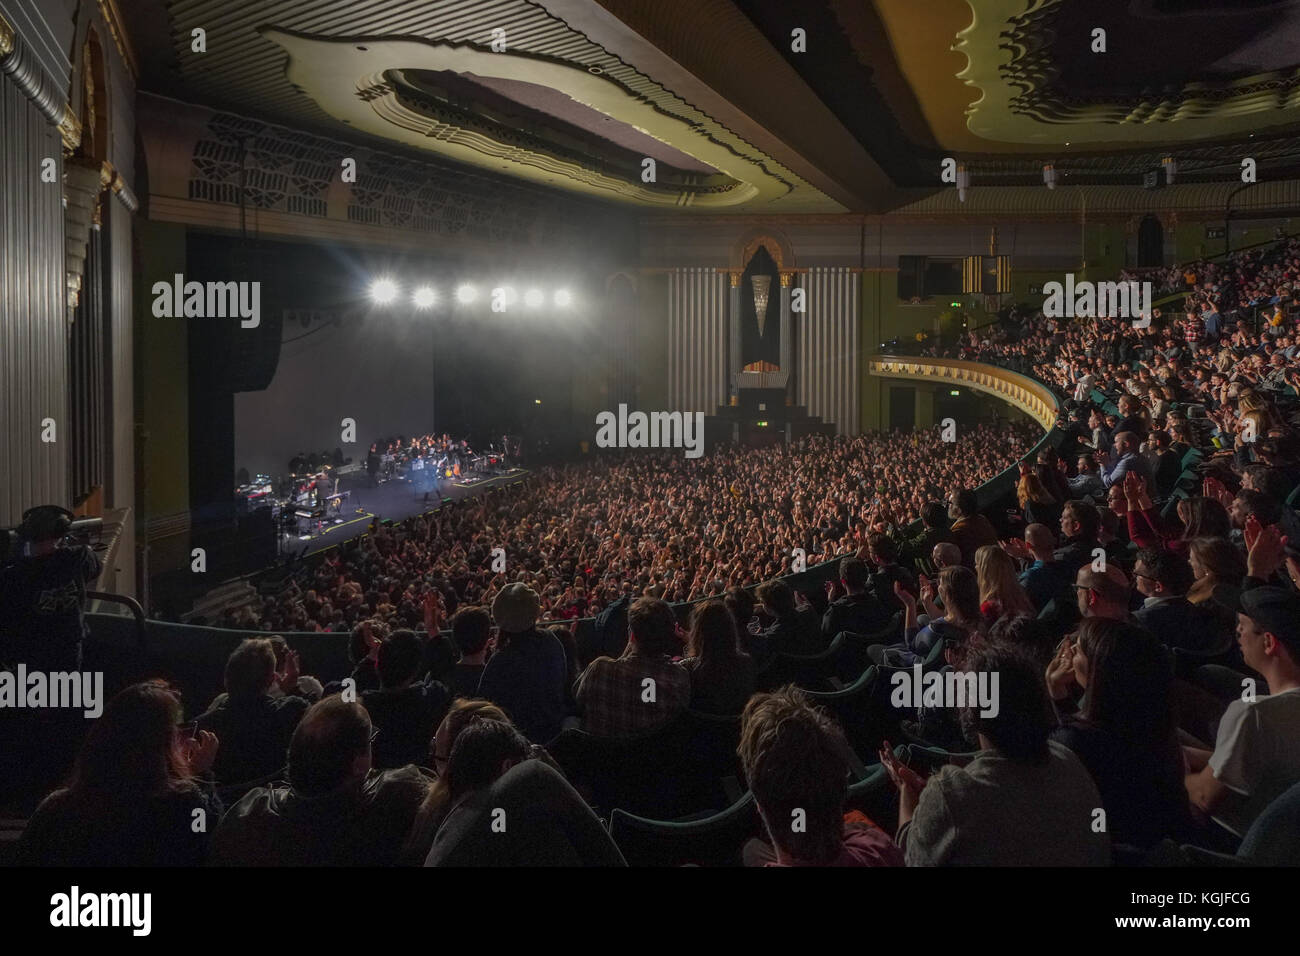 Hammersmith, London, UK. 08th Nov, 2017. Hammersmith Eventim Apollo in London during a performance by Father John - Stock Image